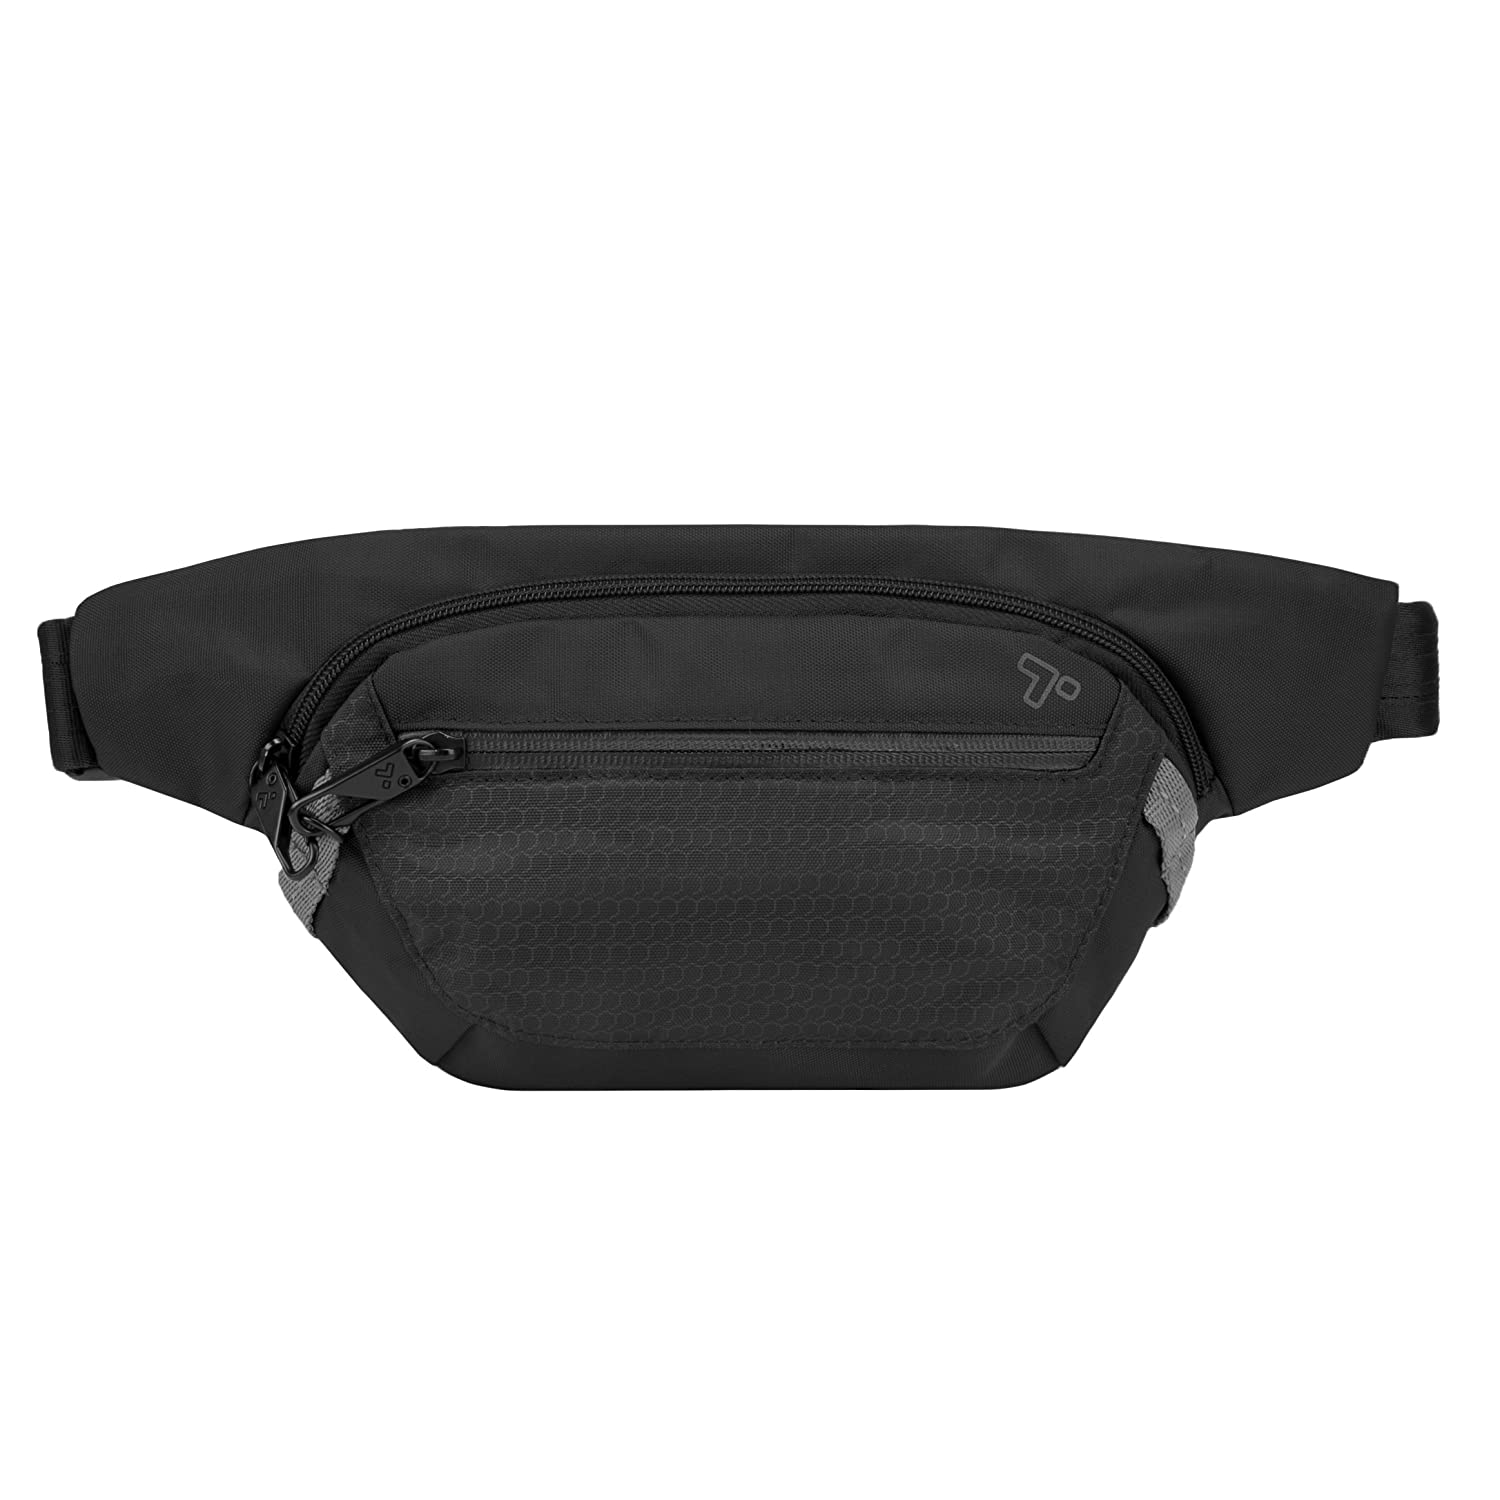 new lifestyle pretty cheap new specials Travelon Anti-Theft Active Waist Pack, Black